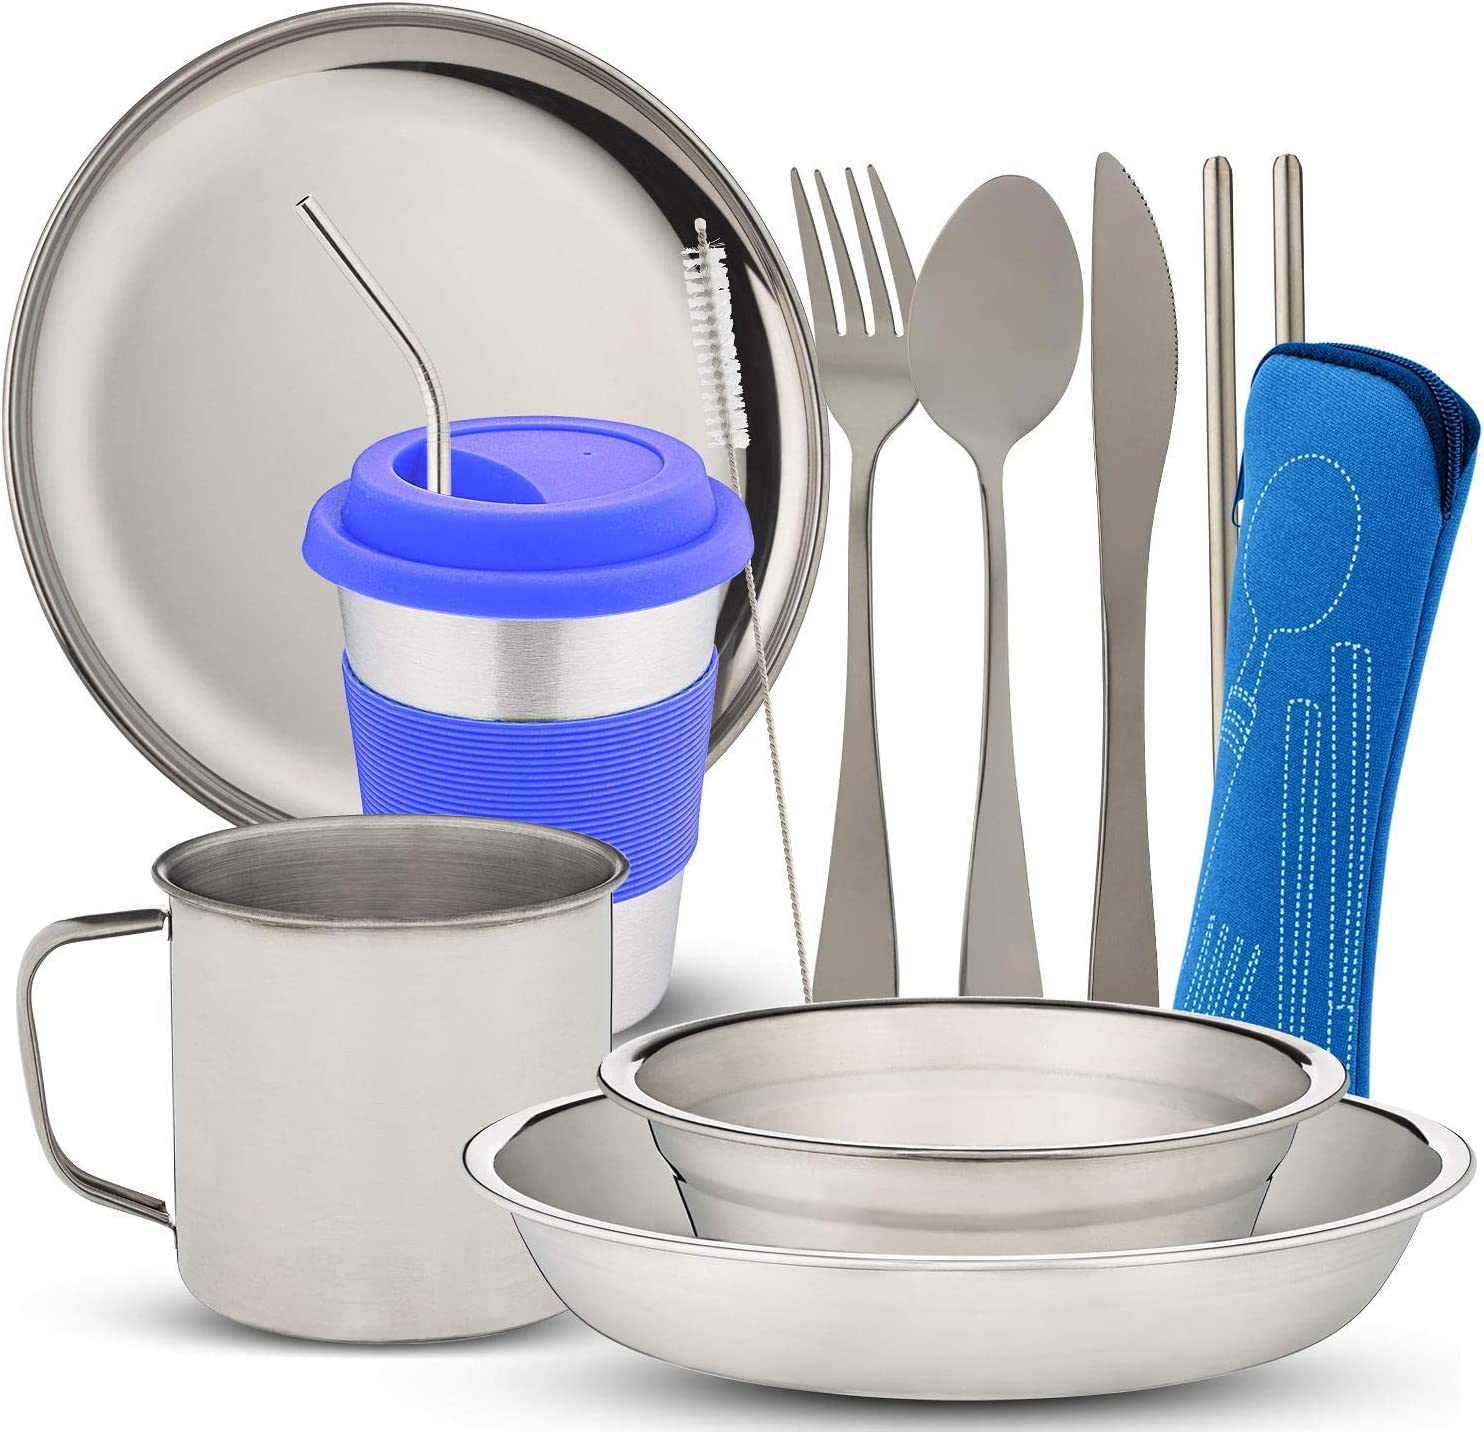 10-Piece Camping Dish Set Complete Camping Dinnerware Set with Cup with Zipper Cutlery Bag Backpacking Hiking and Cutlery Bowl Stainless Steel Camp Mess Kit with Mesh Bag for Camping Plate